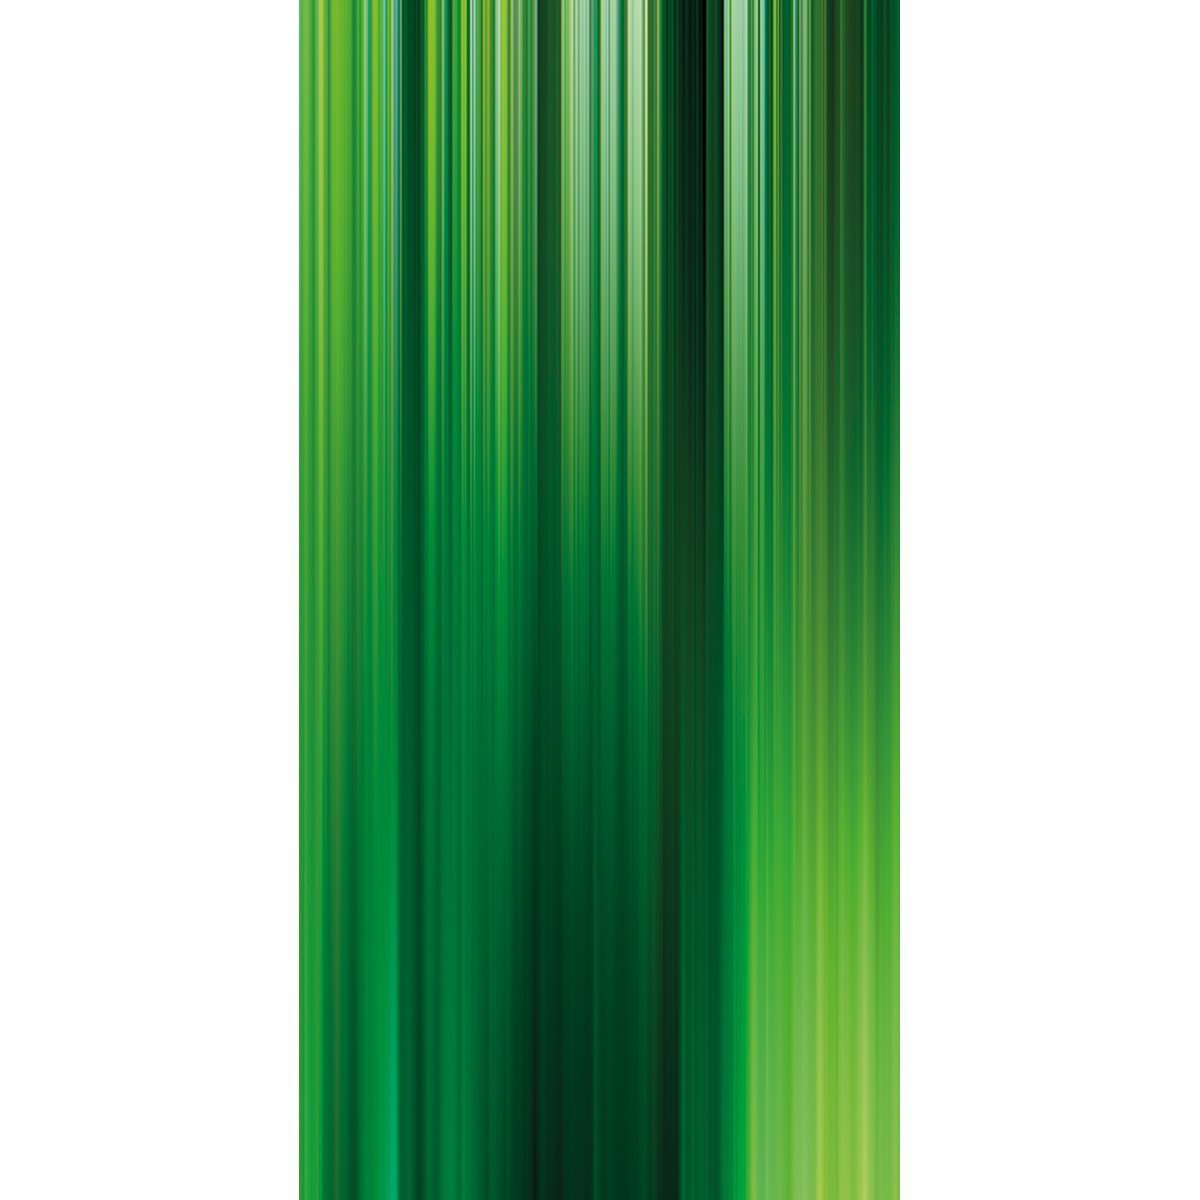 Wall Acoustics Panel 2 Muffle Abstract Mural - Kinetic Green Panel 2